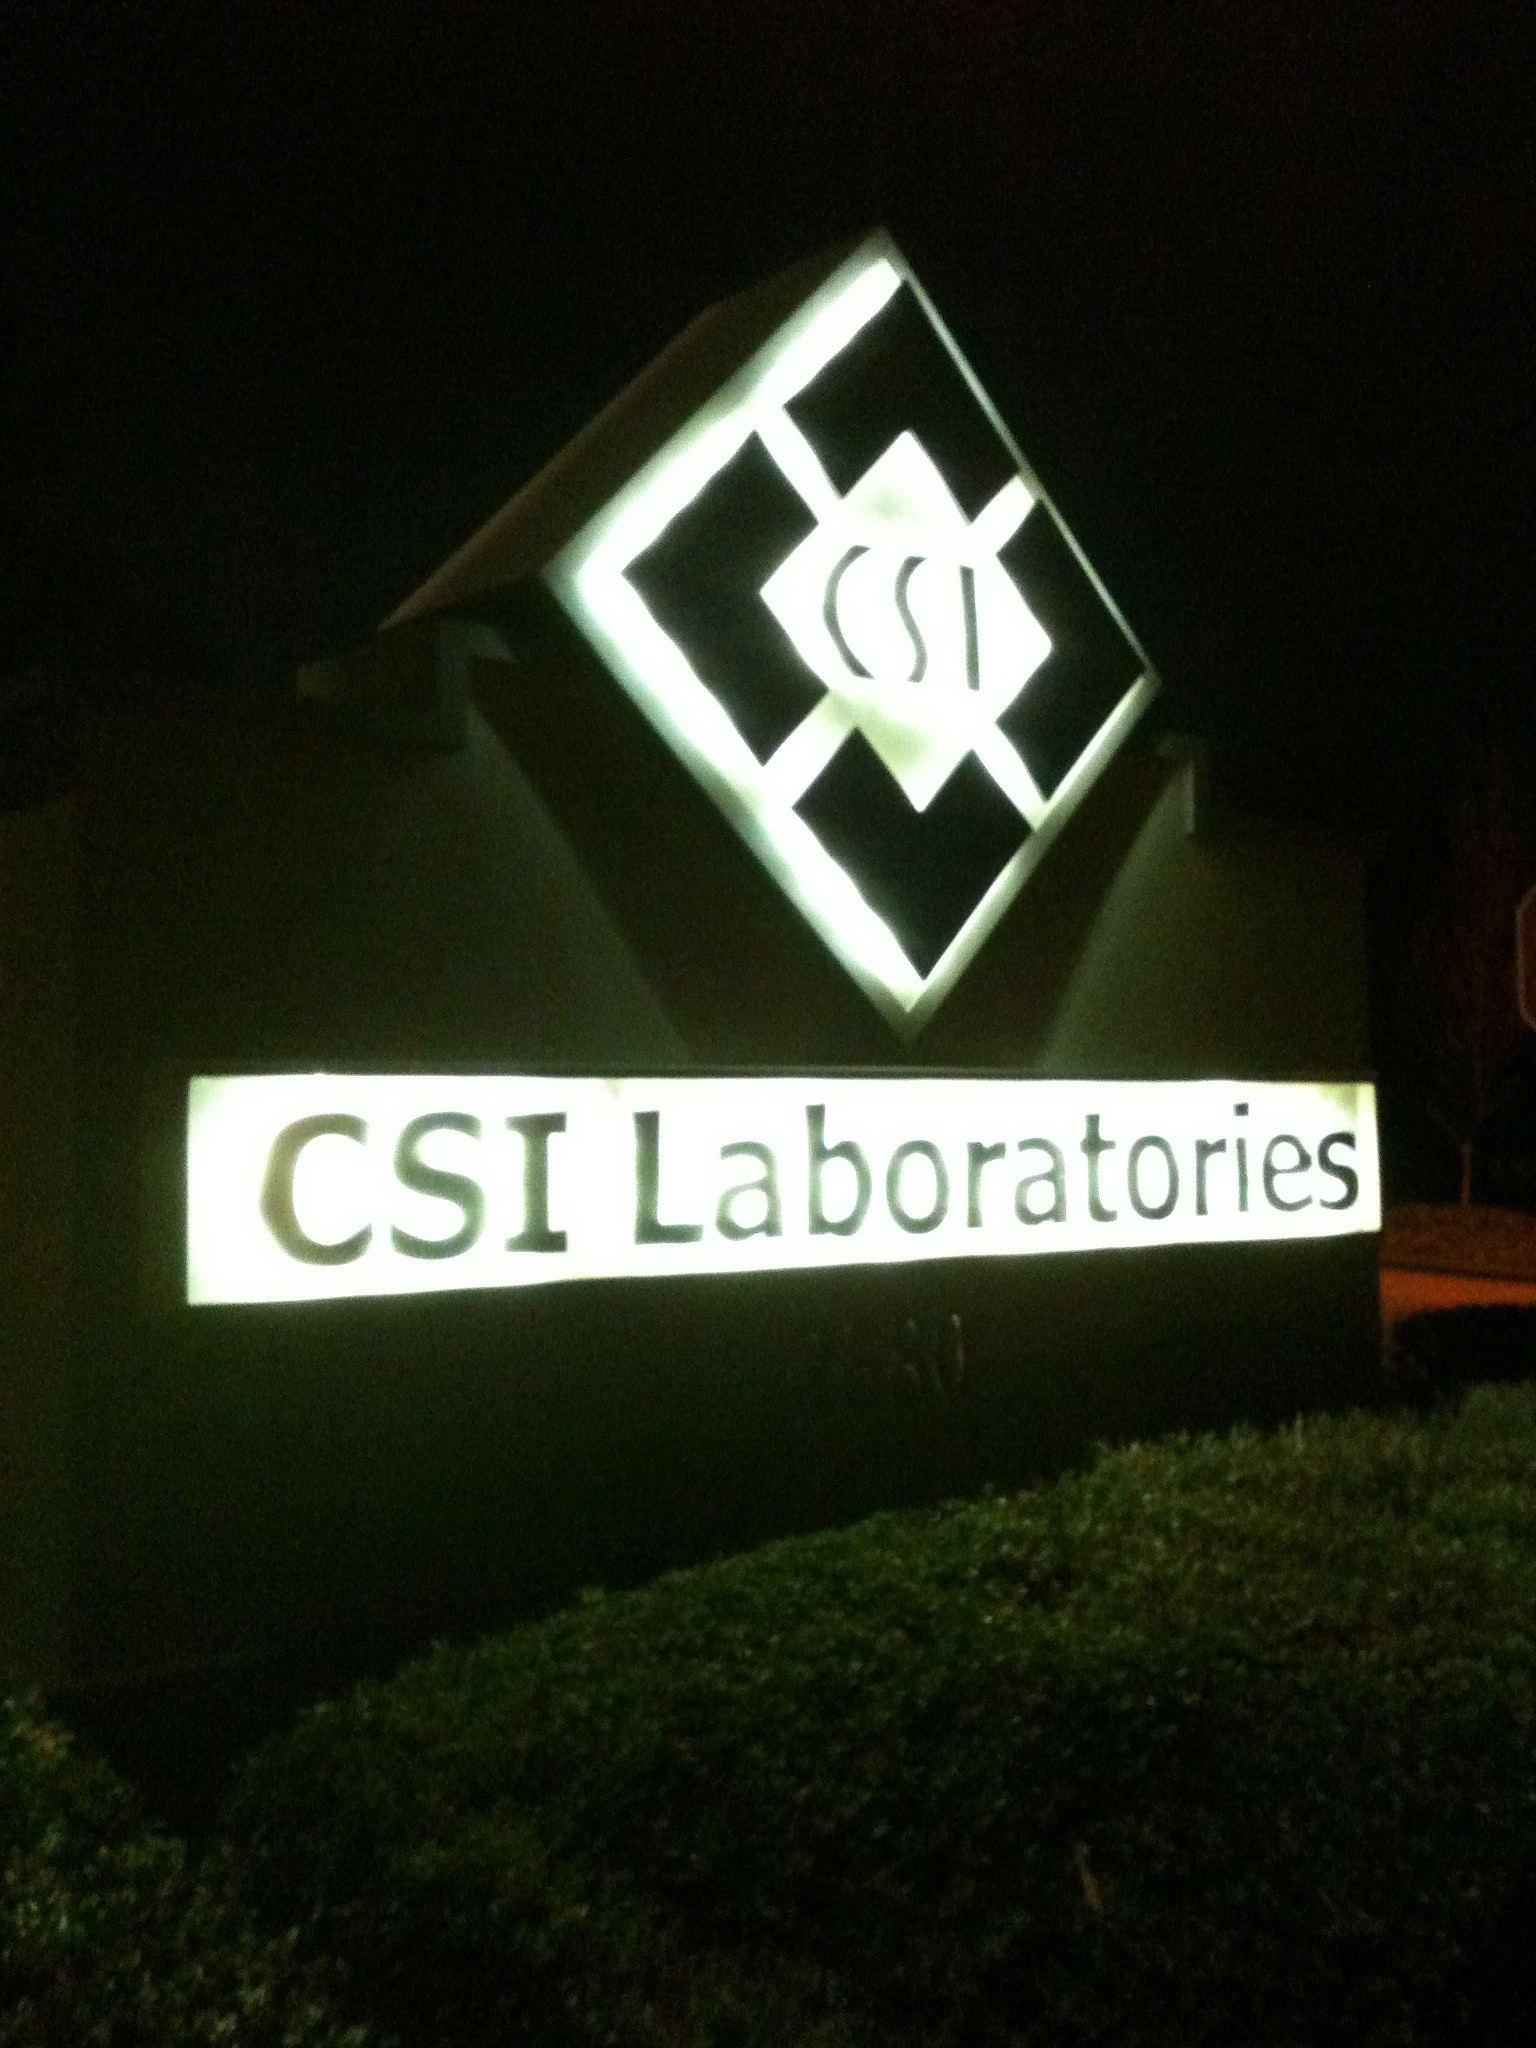 Commercial Business Sign with LED Strand Lights - Night Time View